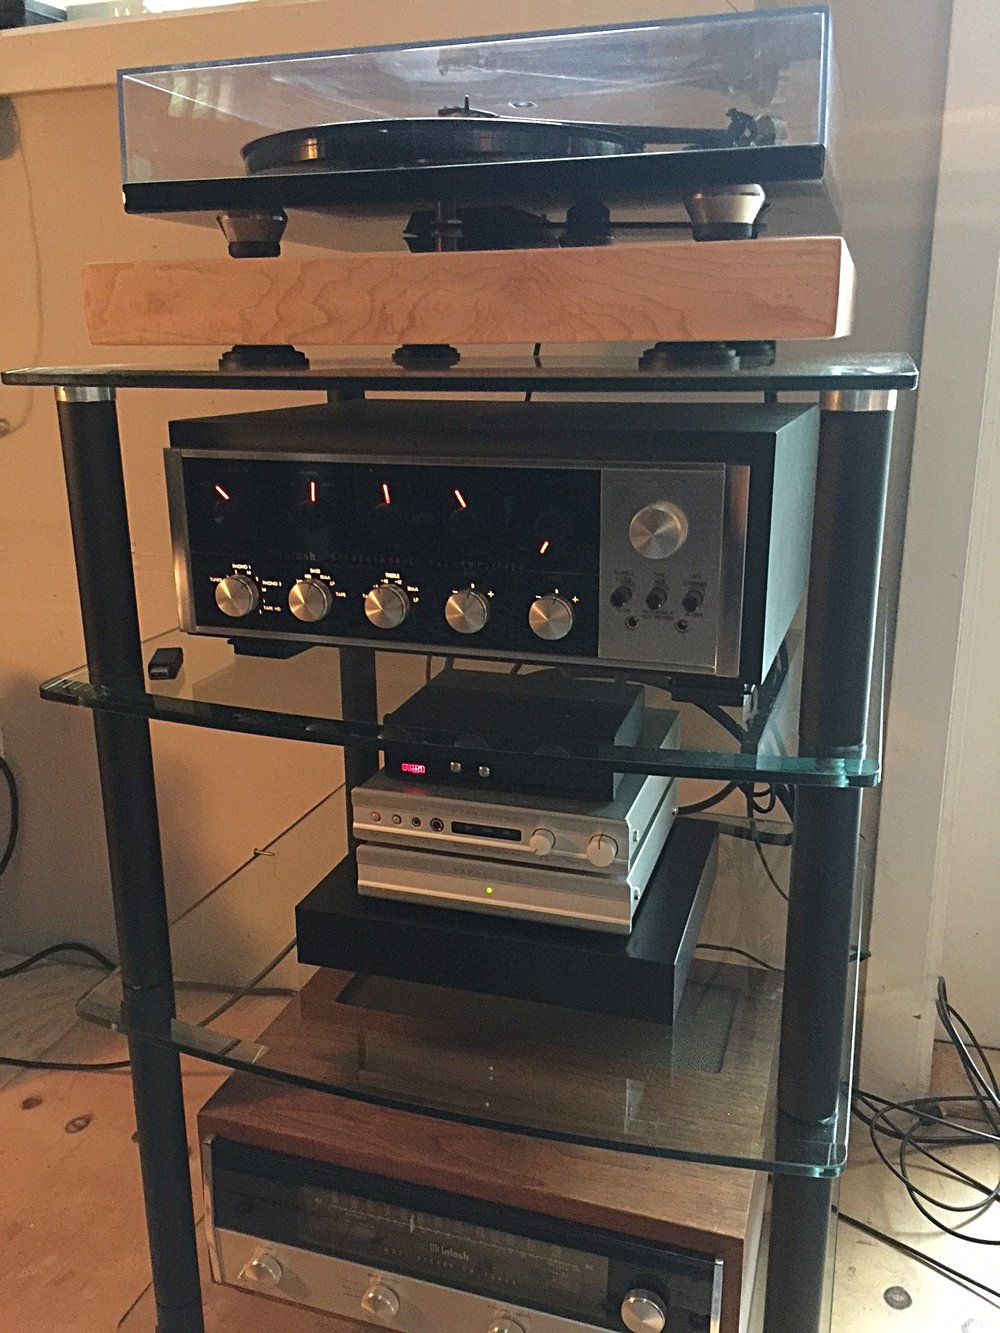 Bob A system:  McIntosh MR71/C20, Rega RP6/Elys cartridge, Parasound DAC/Phono, McIntosh MC30 monoblocks, 1976 Klipsche KHorns.